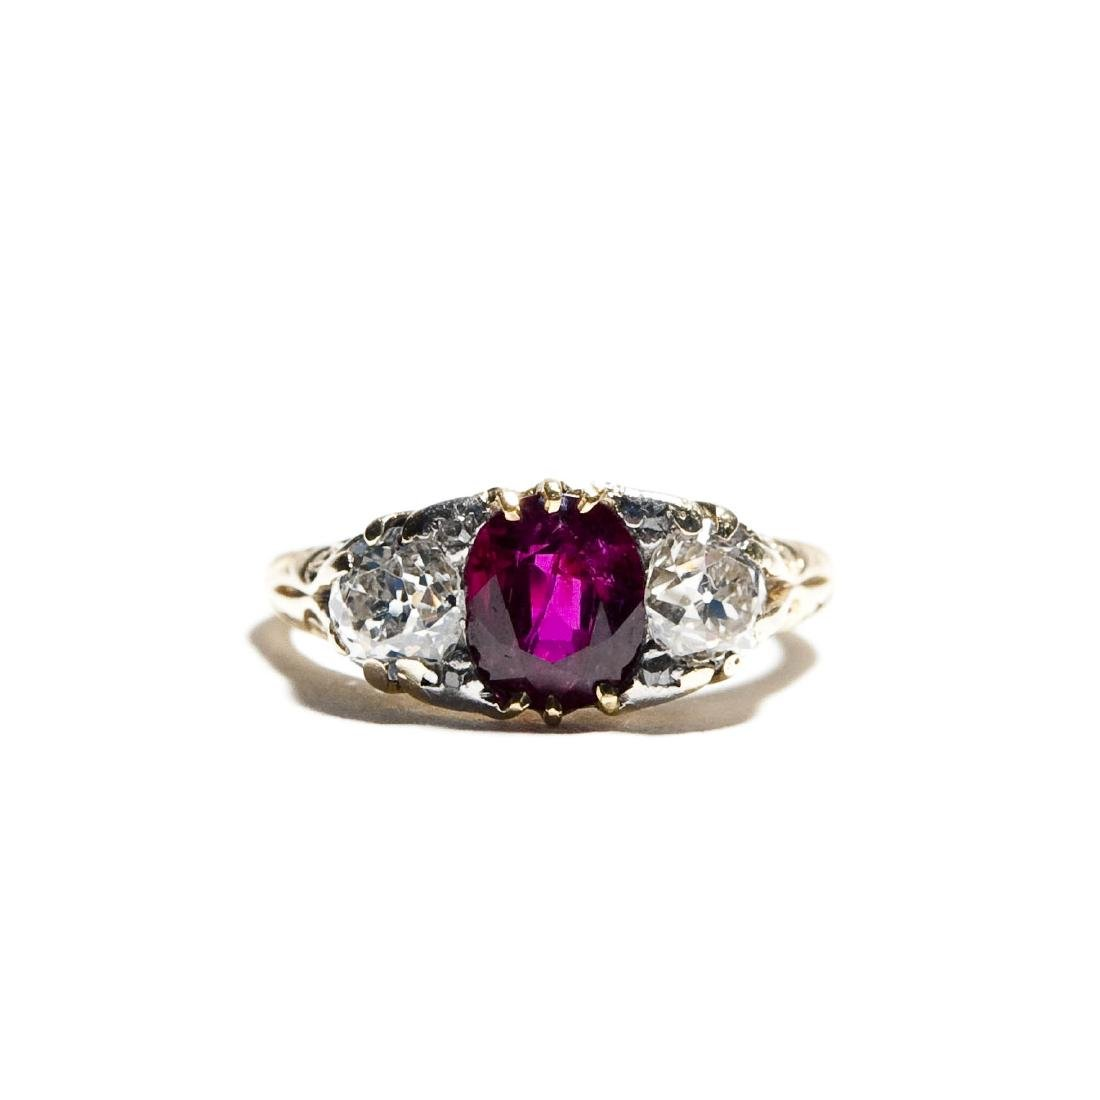 Vintage English Lady's Ruby and Diamond Ring.